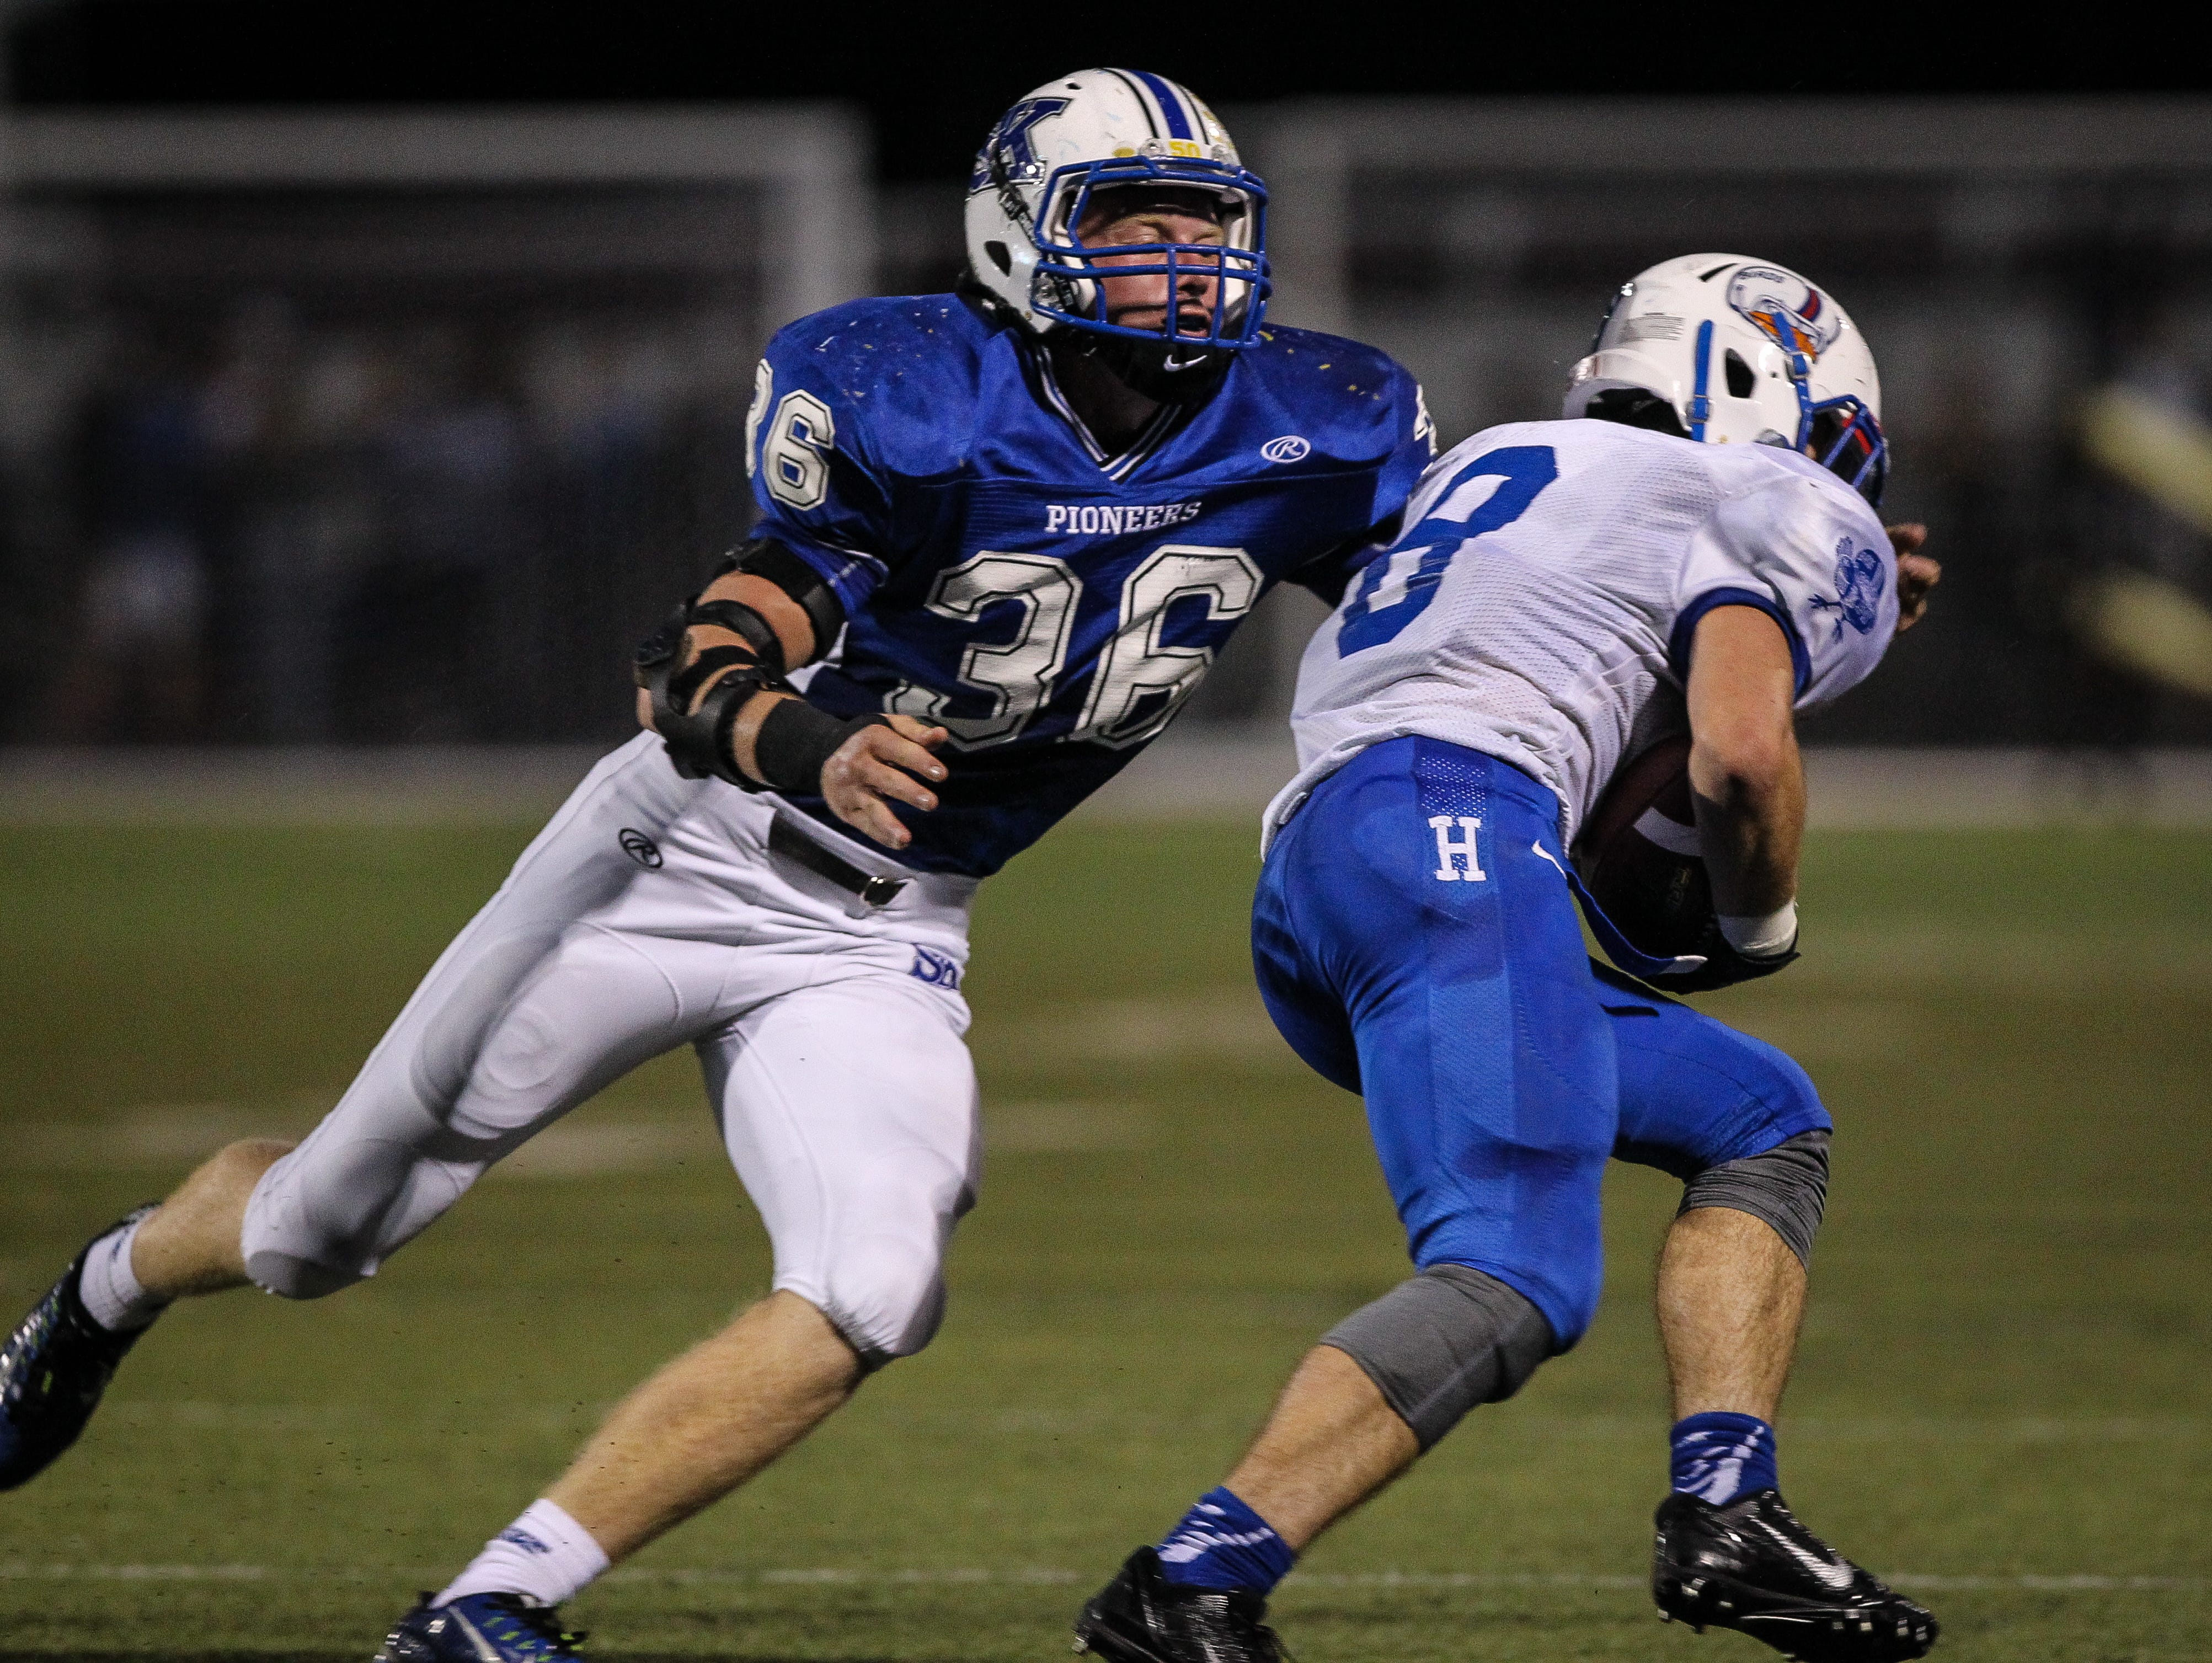 Simon Kenton's Taylor Holtkamp looks to wrap up Highlands' Nick Kendall during their game Friday, September 25, 2015.